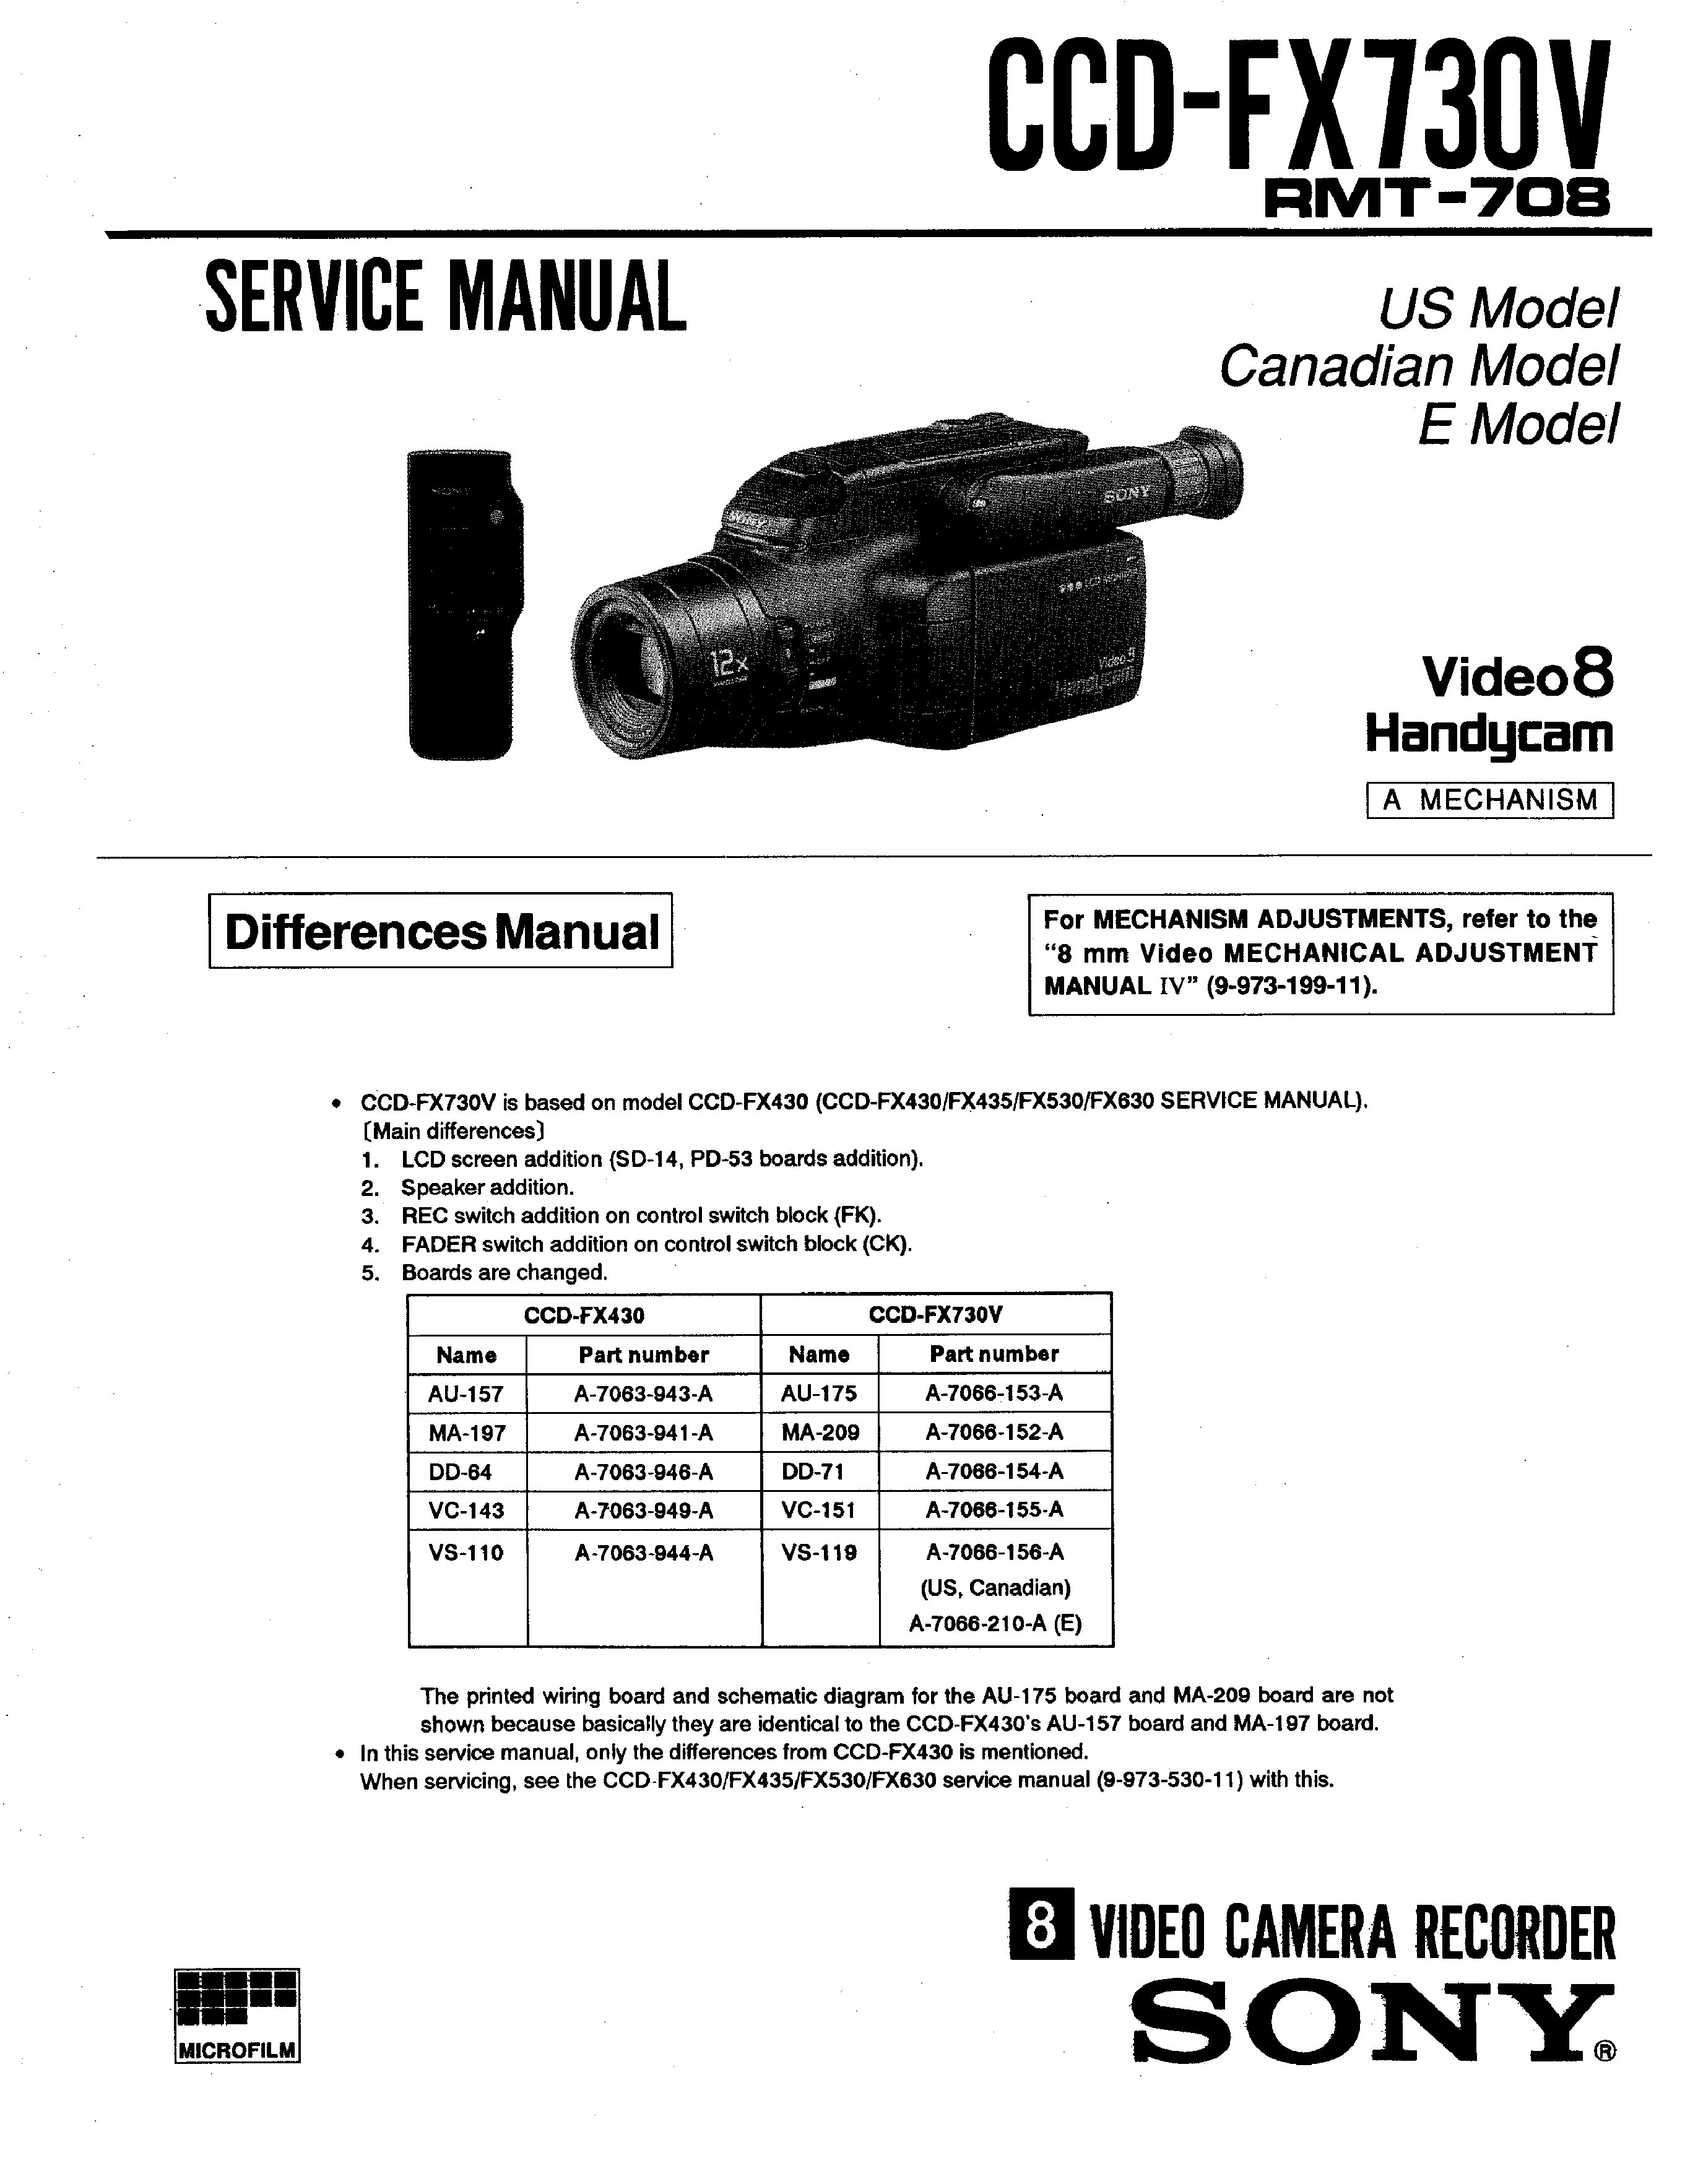 m 9, kenwood--at-130-user-manual, m 9, magnum dynalab hs- mb- mc-43s mc-48b  pg-2n pg-3b ps- rc- sp-40sp-50b sp- sw-100a sw-100b sw-200a sw-200b swt-  swt-